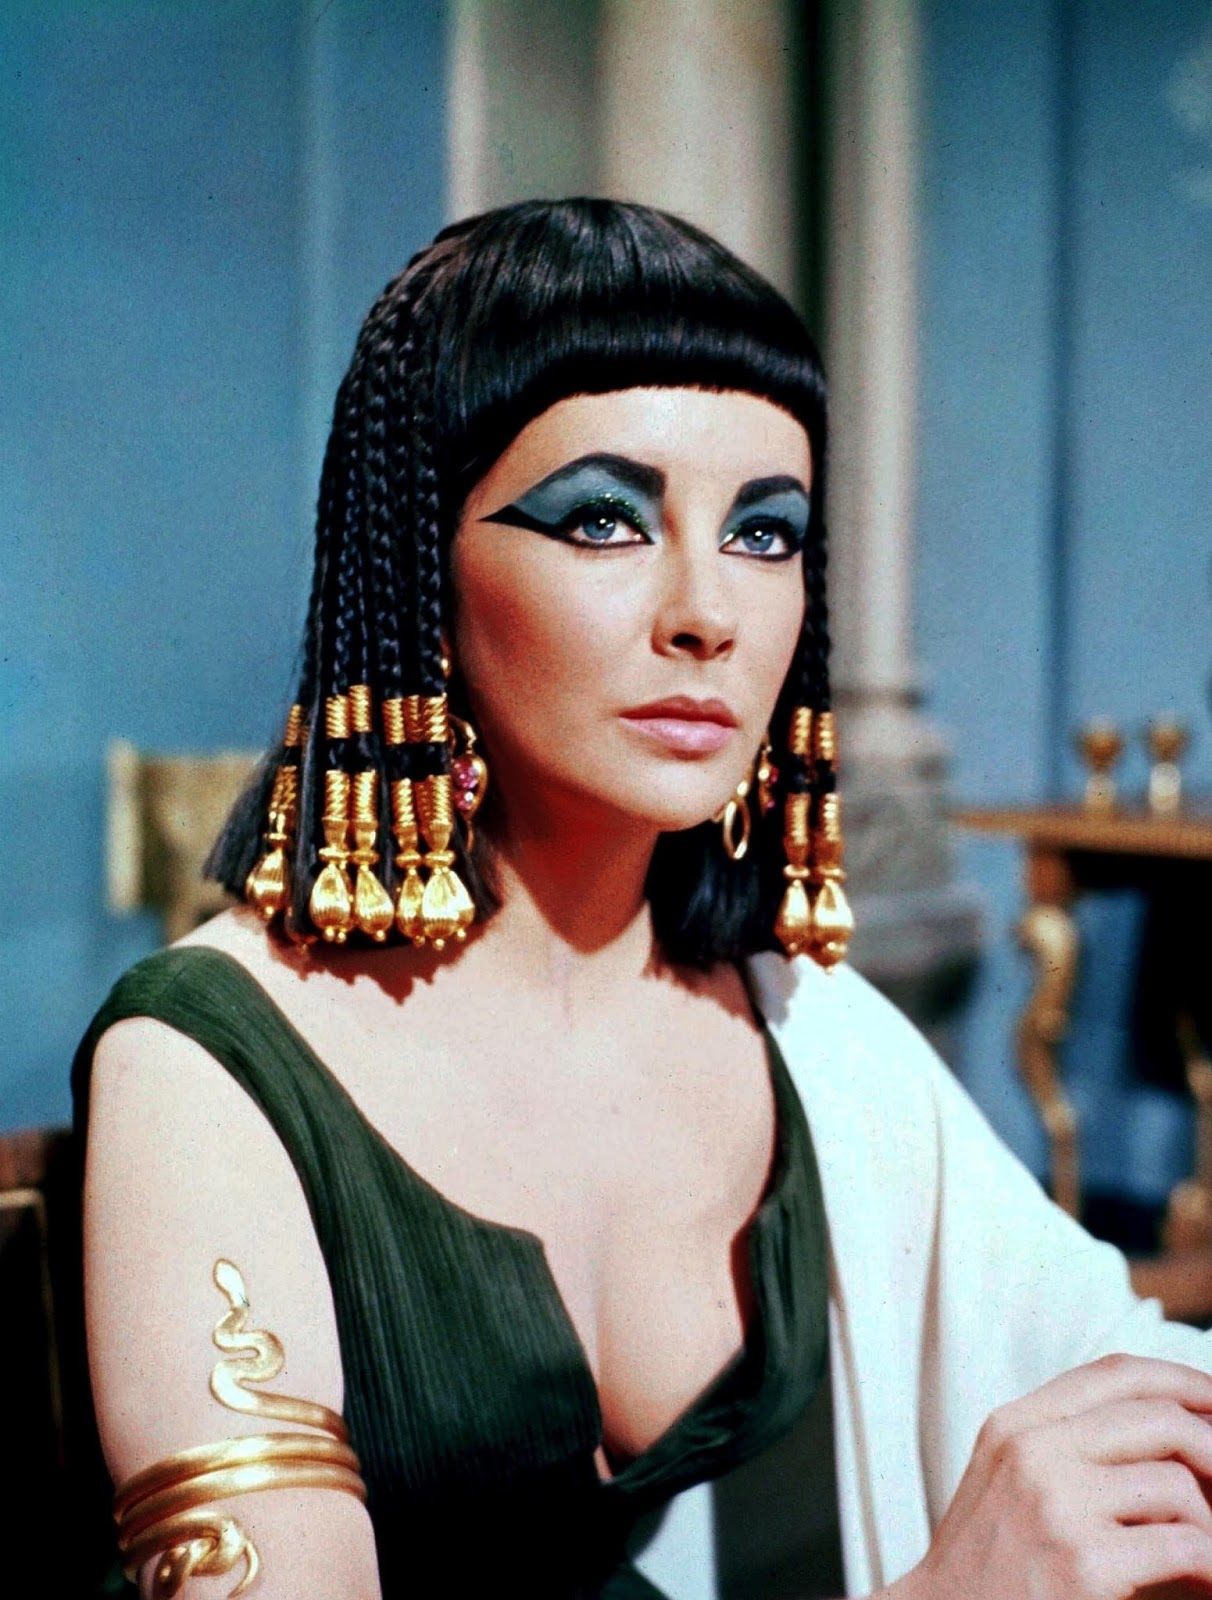 Cleopatra, who reportedly used black seed oil for beauty